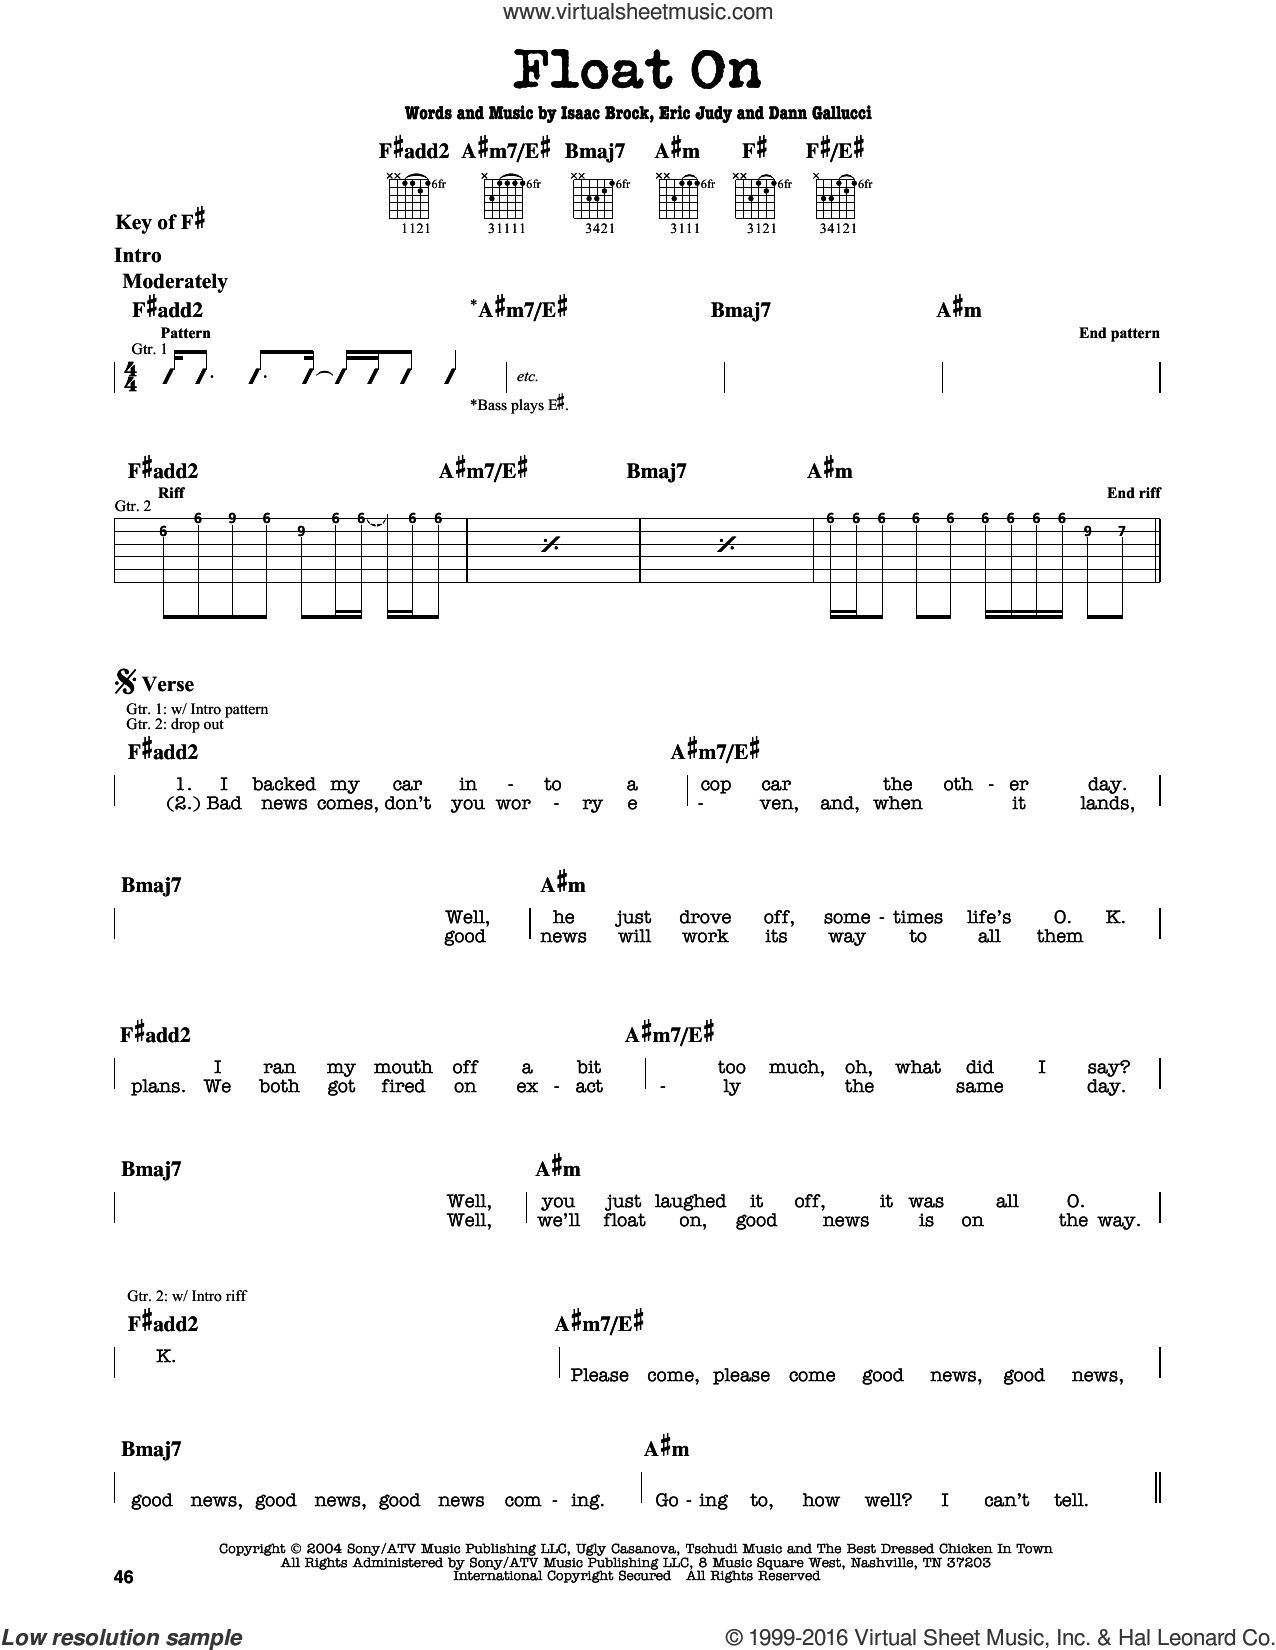 Float On sheet music for guitar solo (lead sheet) by Modest Mouse, Dann Gallucci, Eric Judy and Isaac Brock, intermediate guitar (lead sheet)